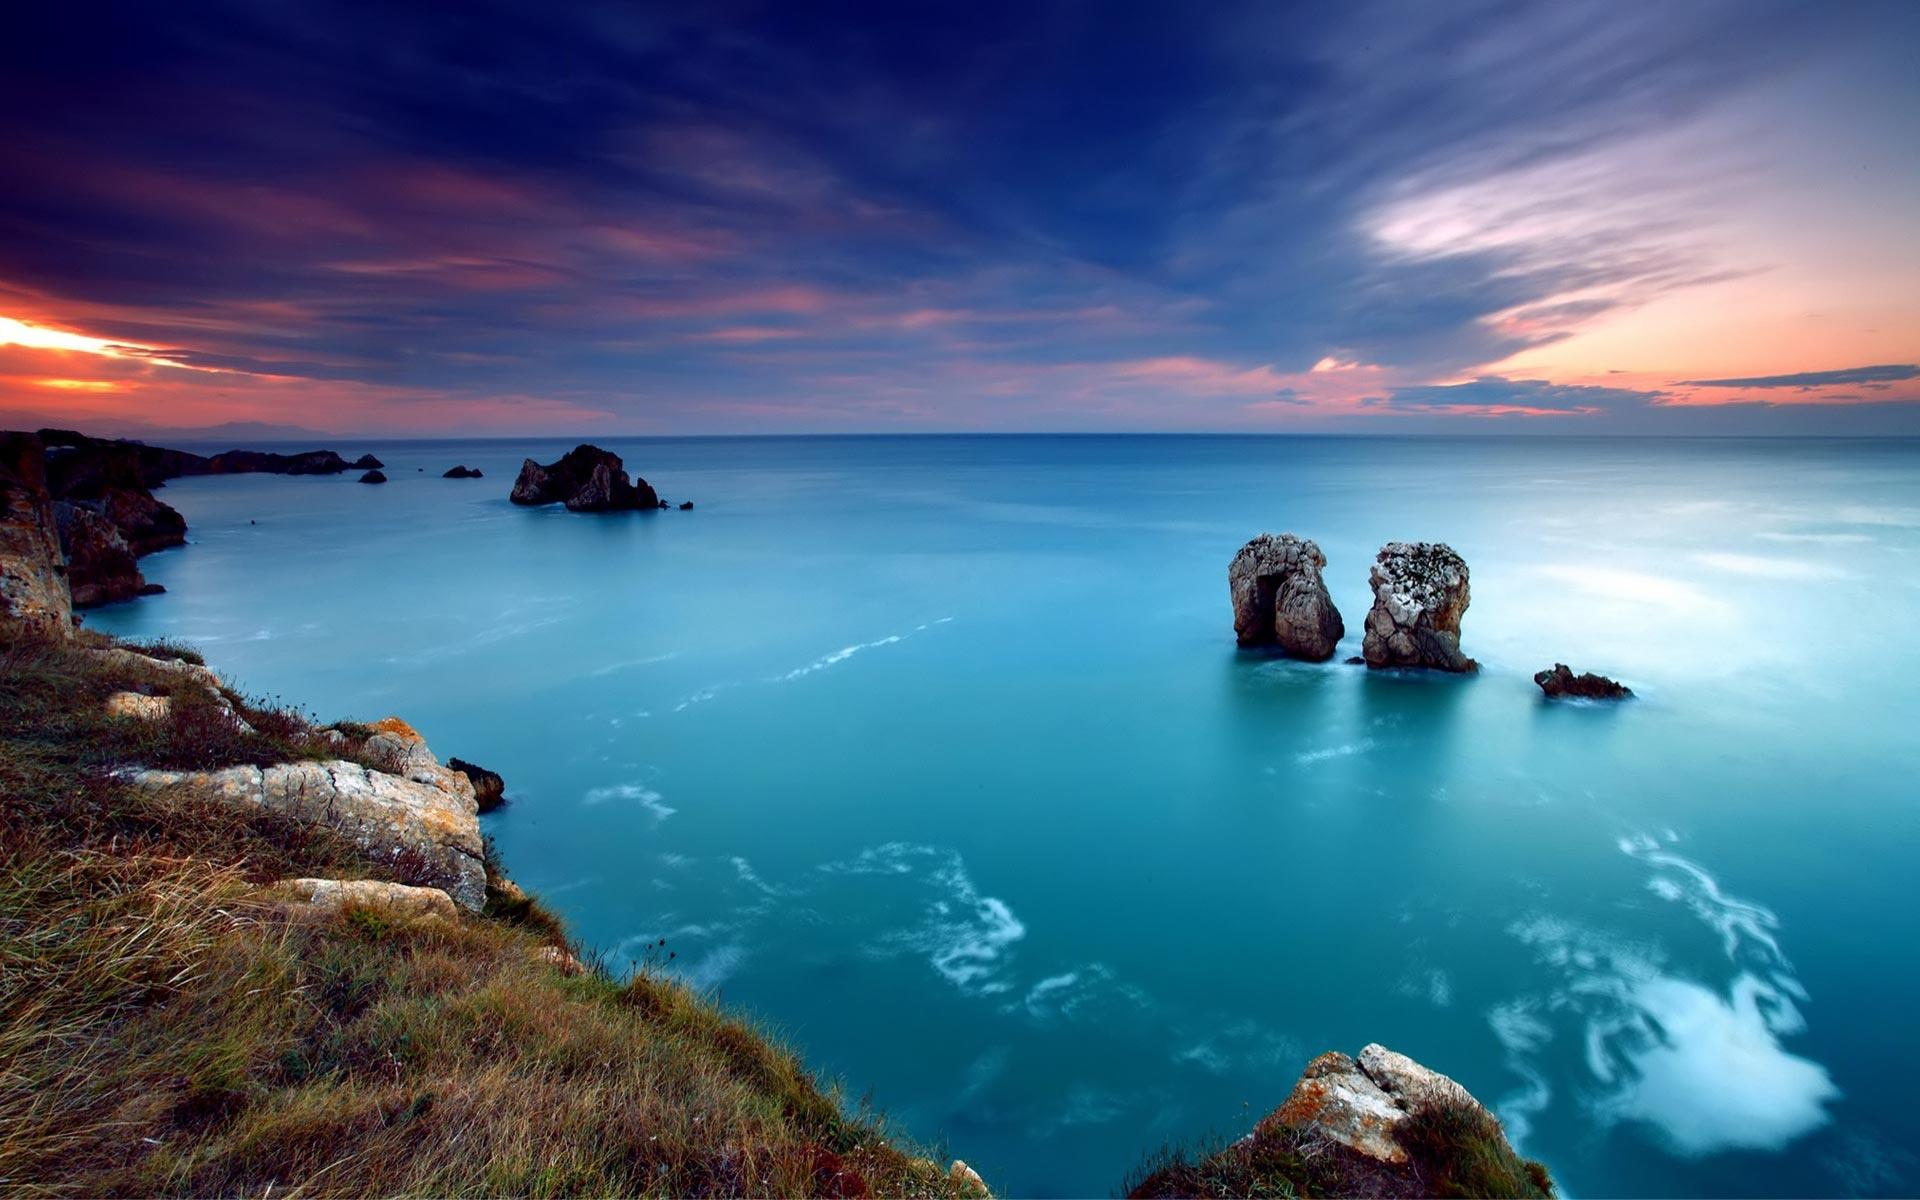 Nature wallpaper for computer desktop - Amazing Nature Wallpapers Full Hd Wallpaper Search Page 3